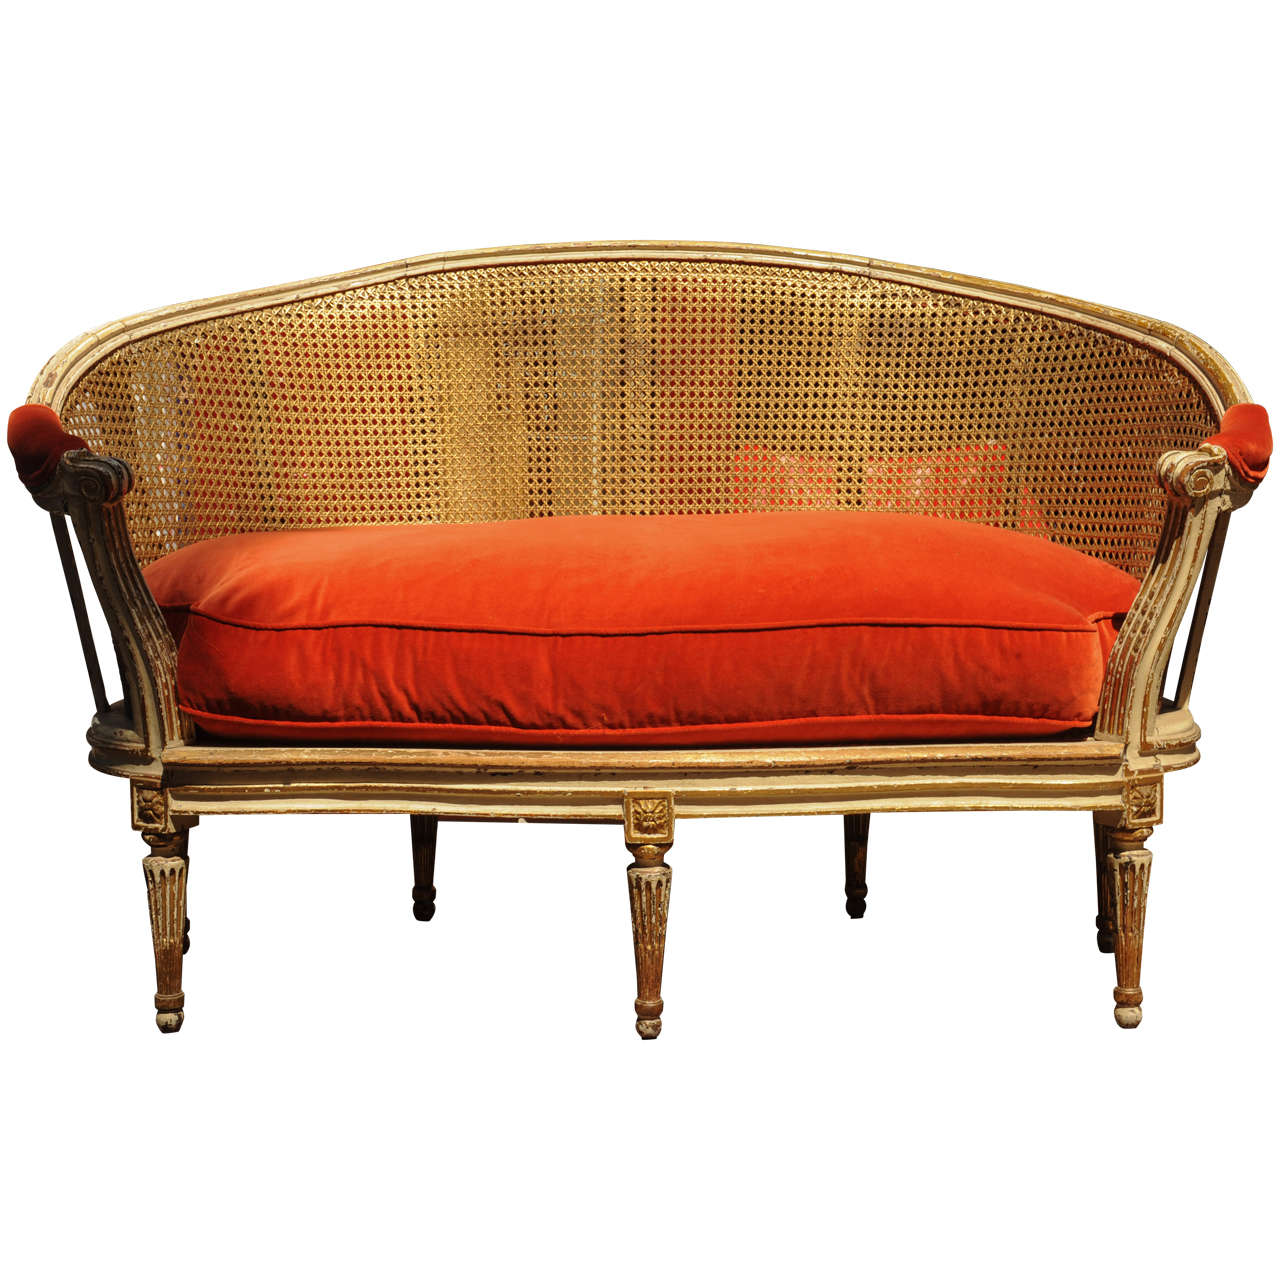 French louis xvi sofa at 1stdibs for French divan chair